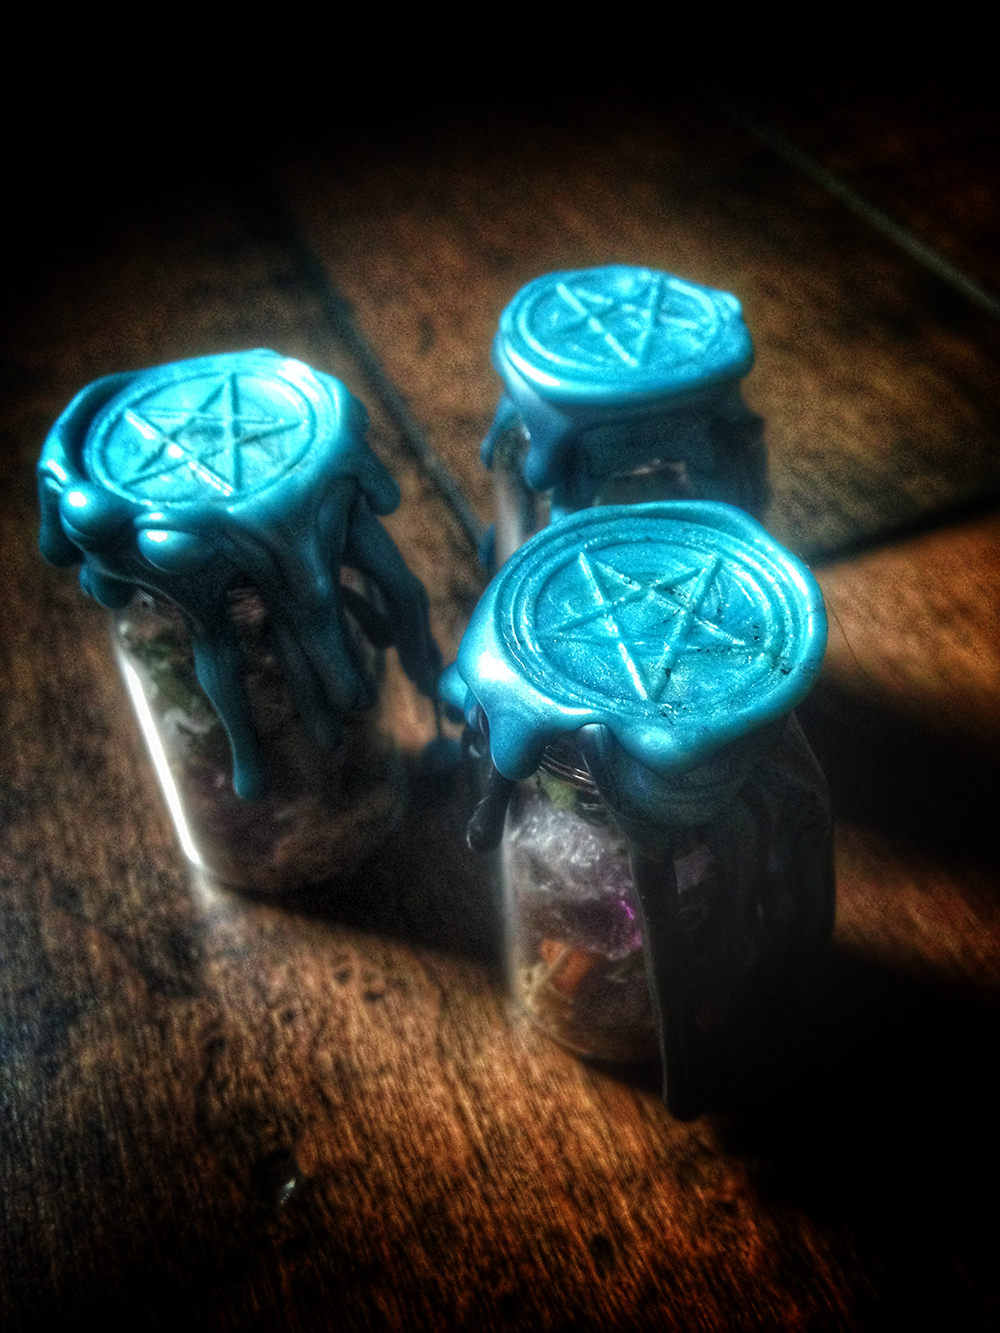 Witch bottle Psychic Vision Dream Battery